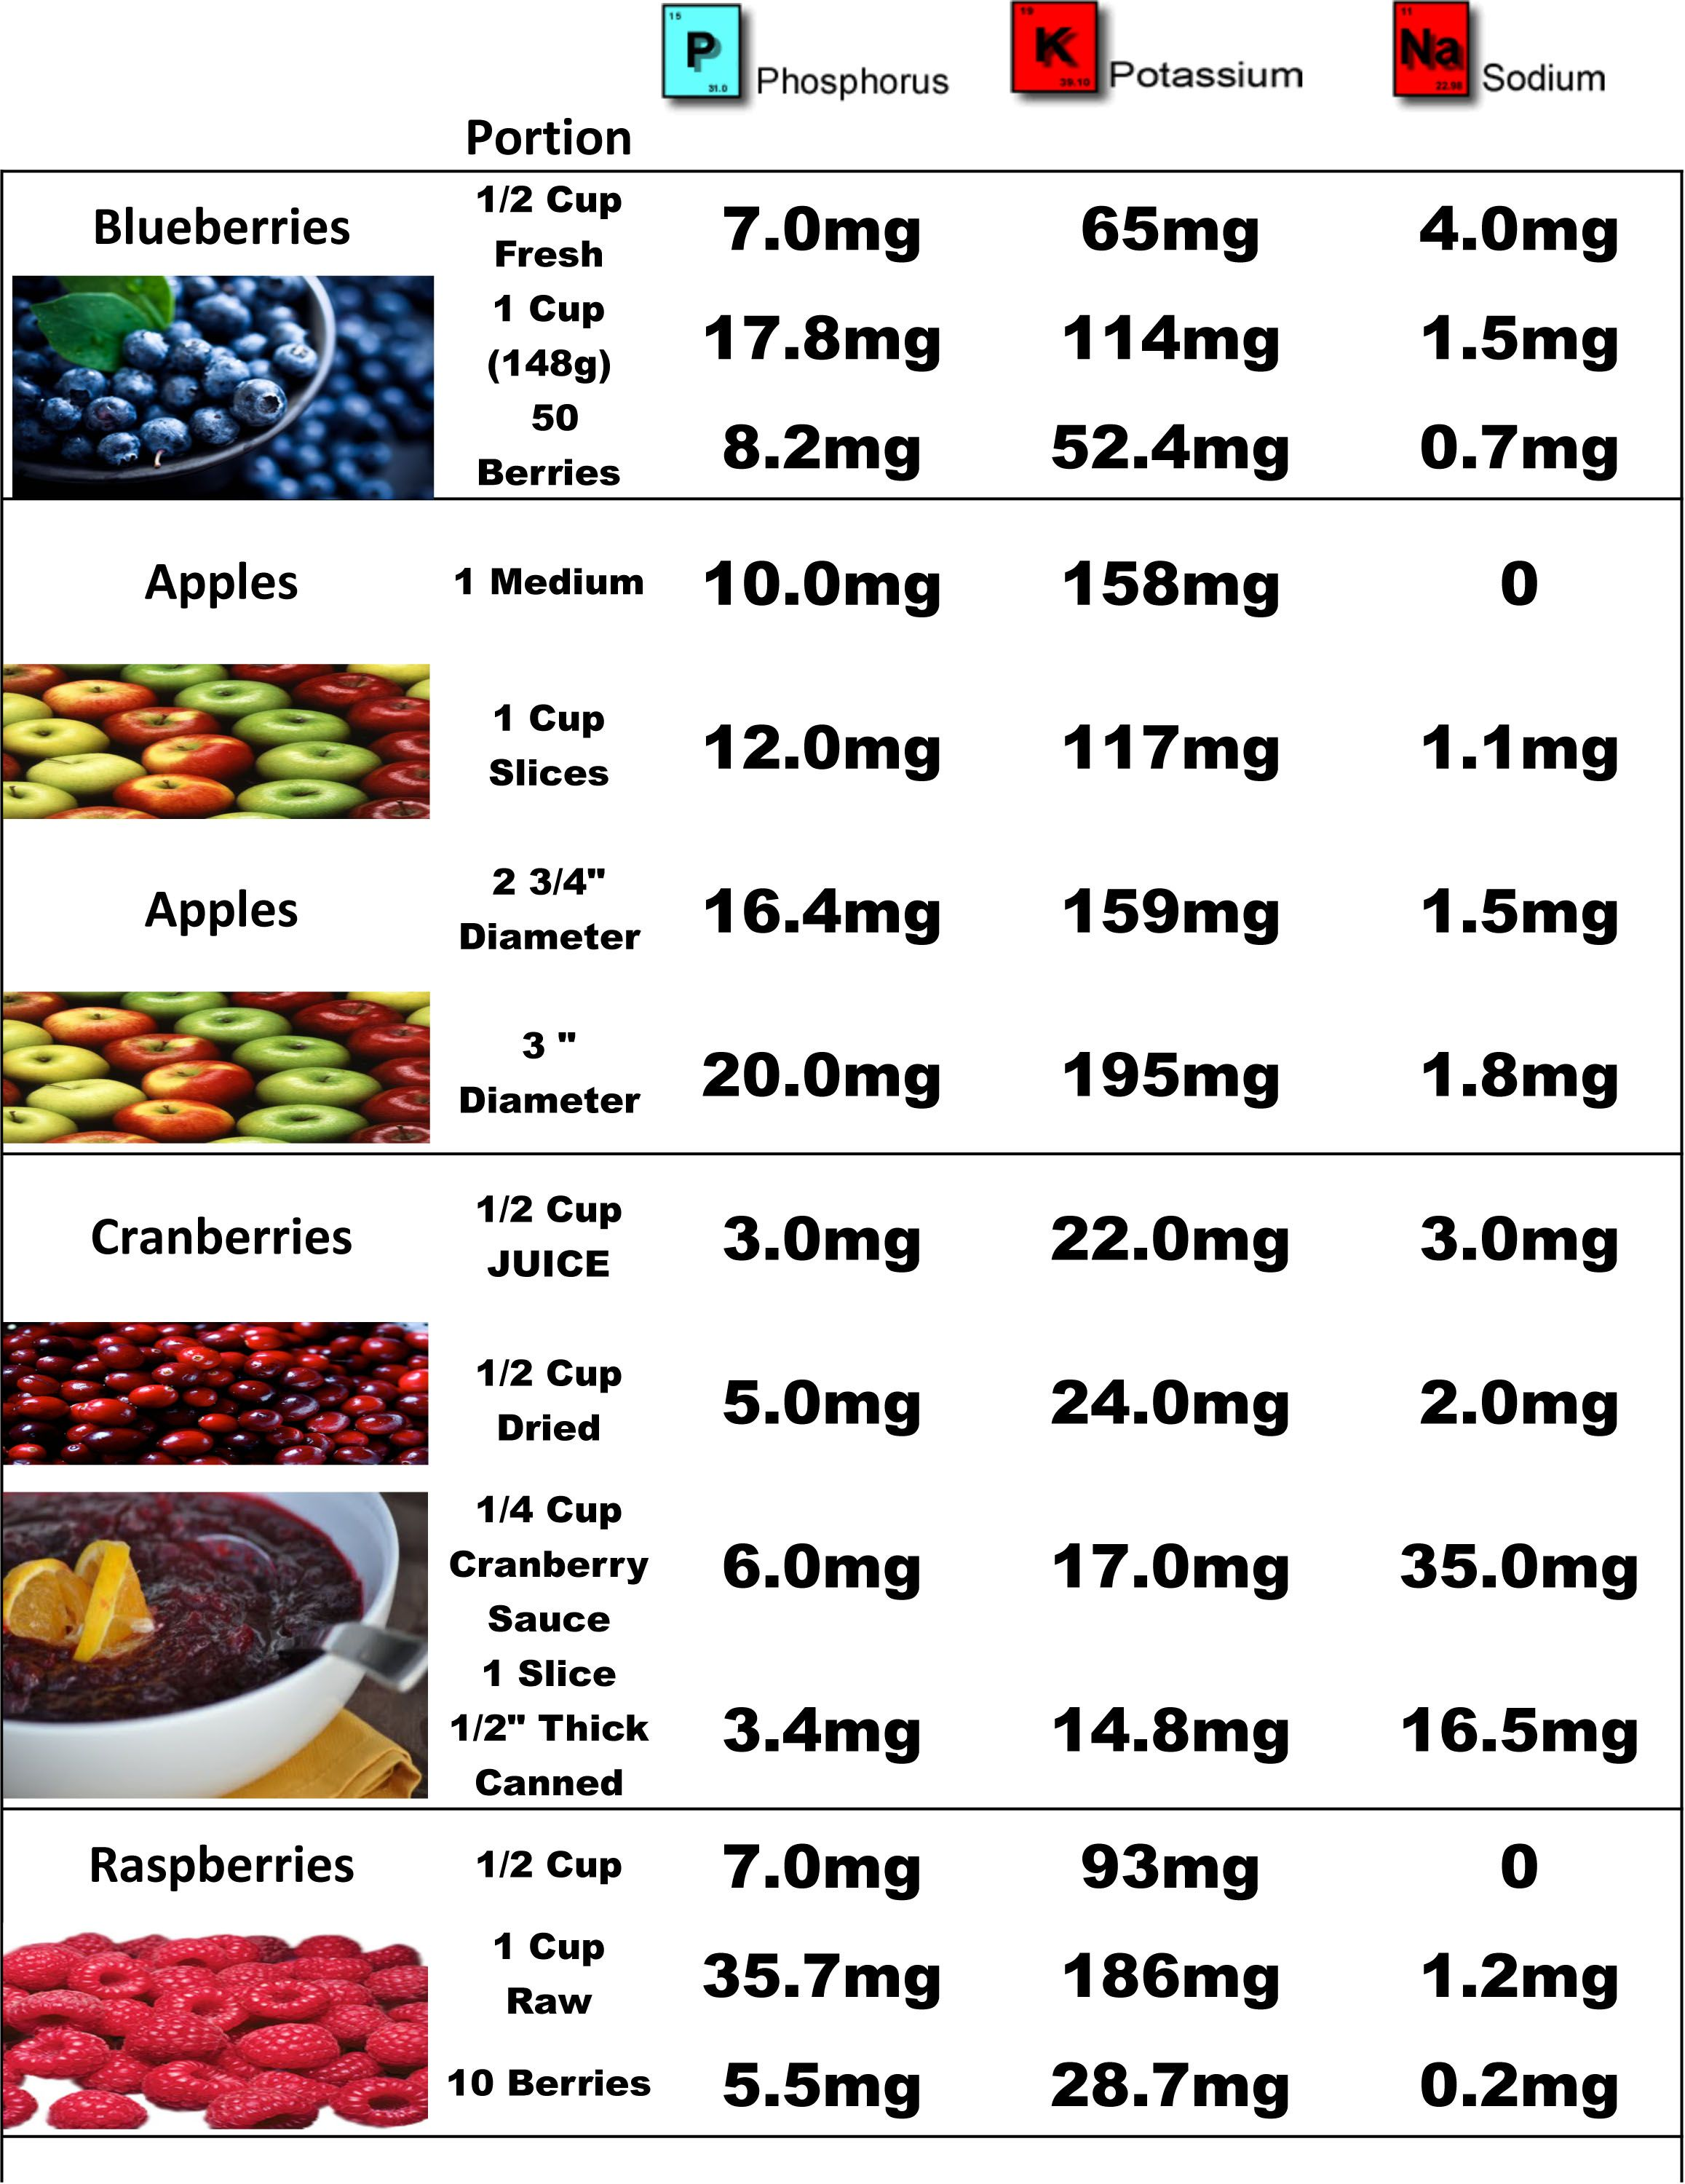 Pin By Rita Hughes On Low Potassium Kidney Disease Diet Dialysis Diet Kidney Health